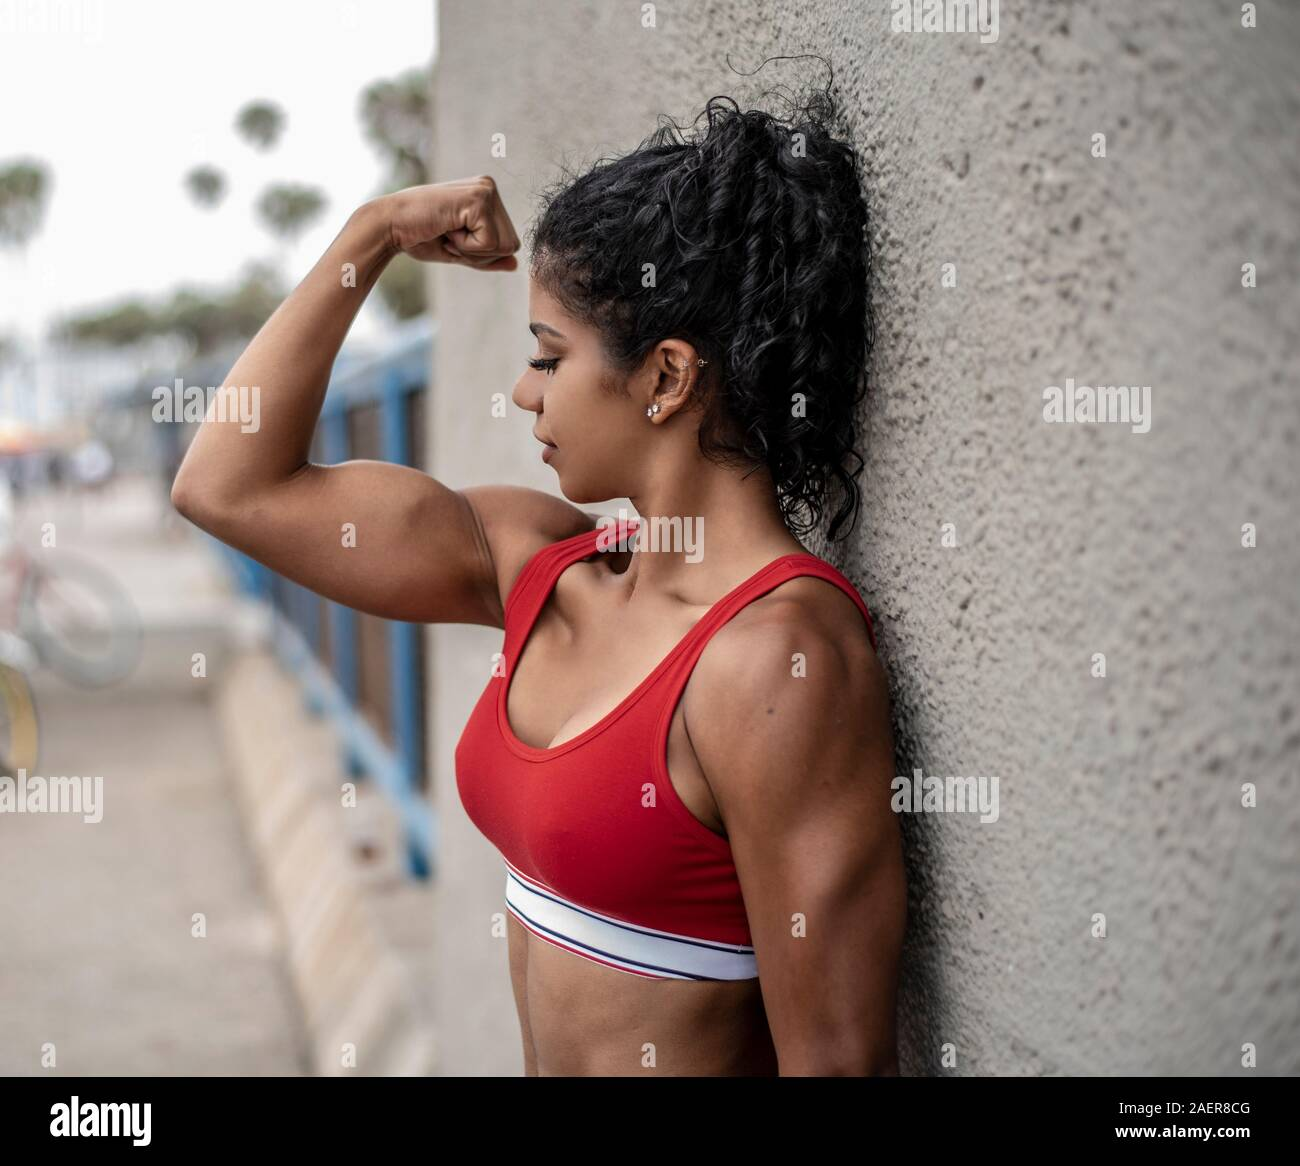 Physically Fit Woman High Resolution Stock Photography And Images Alamy Women are programmed to select healthy male specimens. https www alamy com physically fit woman wearing sports bra flexes arm muscles image336113696 html